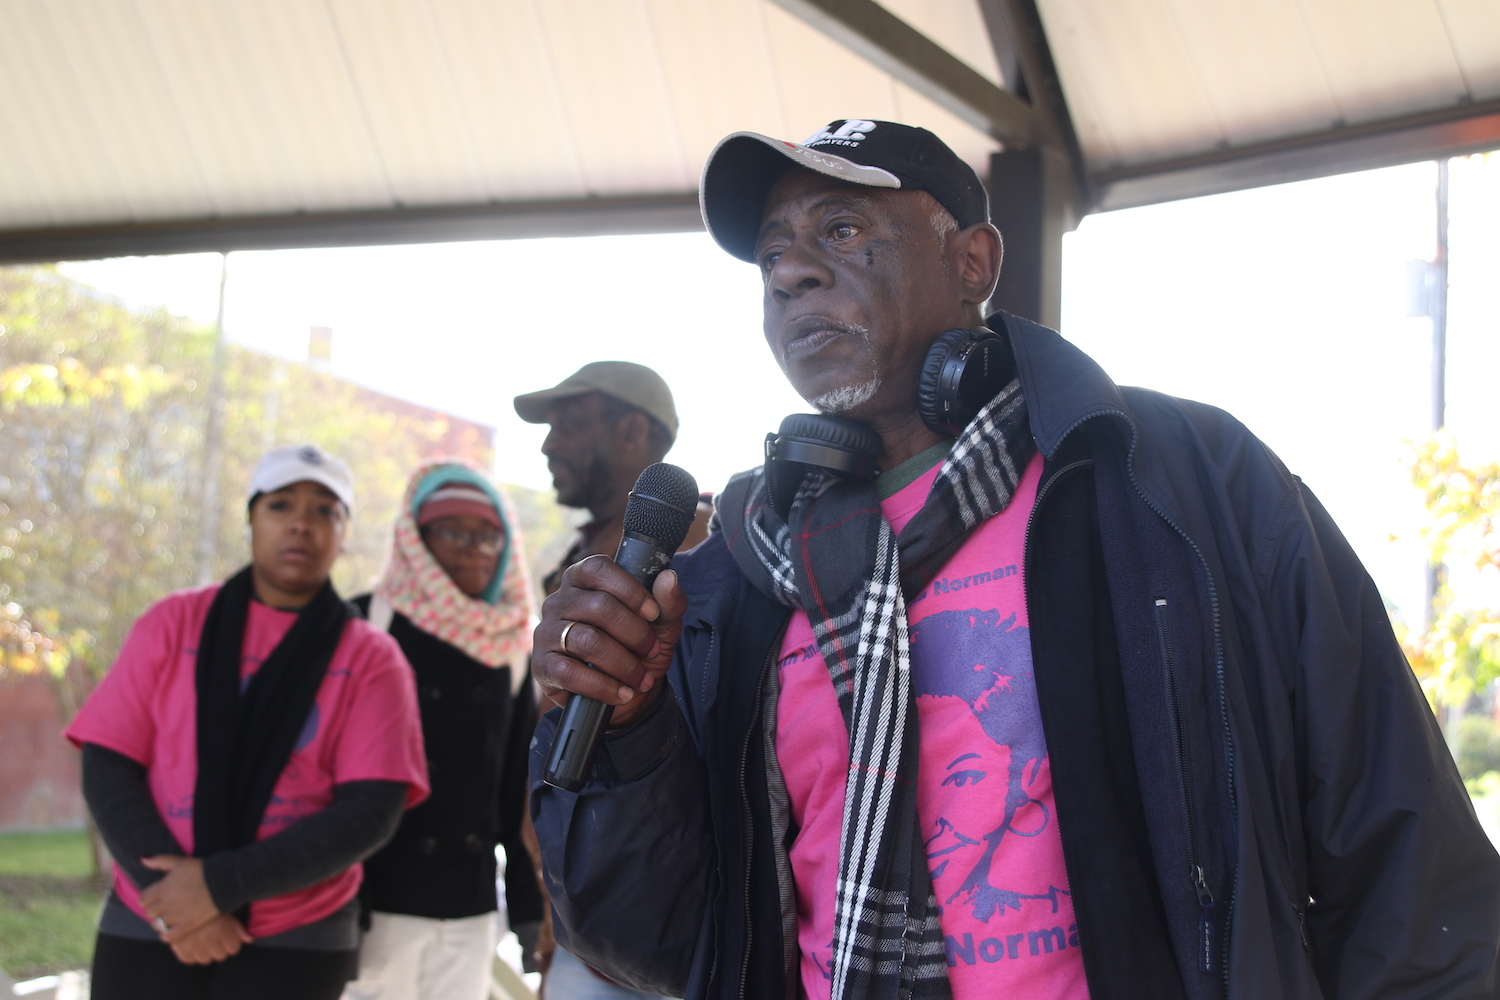 """Danny Bolden, father of the late Latasha Norman, expressed gratitude to JSU, the community and others who traveled great distances to participate in the event. He said, """"Awareness about domestic abuse is much needed on this campus and in the city. You can get out of this situation by seeking help.""""  (Photo by Aron Smith/JSU)"""